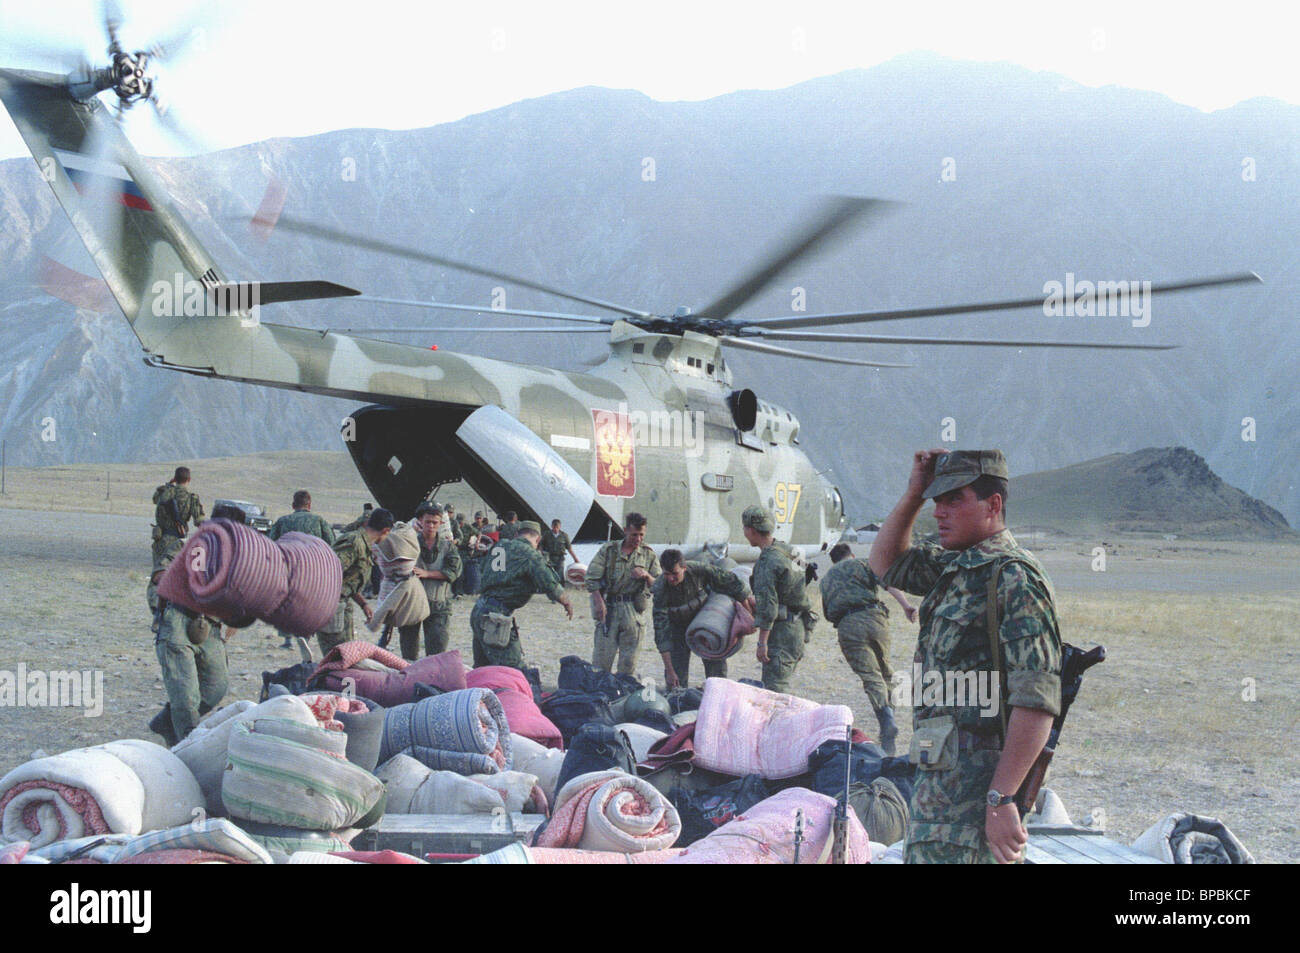 Tajik-Afghan border is being reinforced. - Stock Image